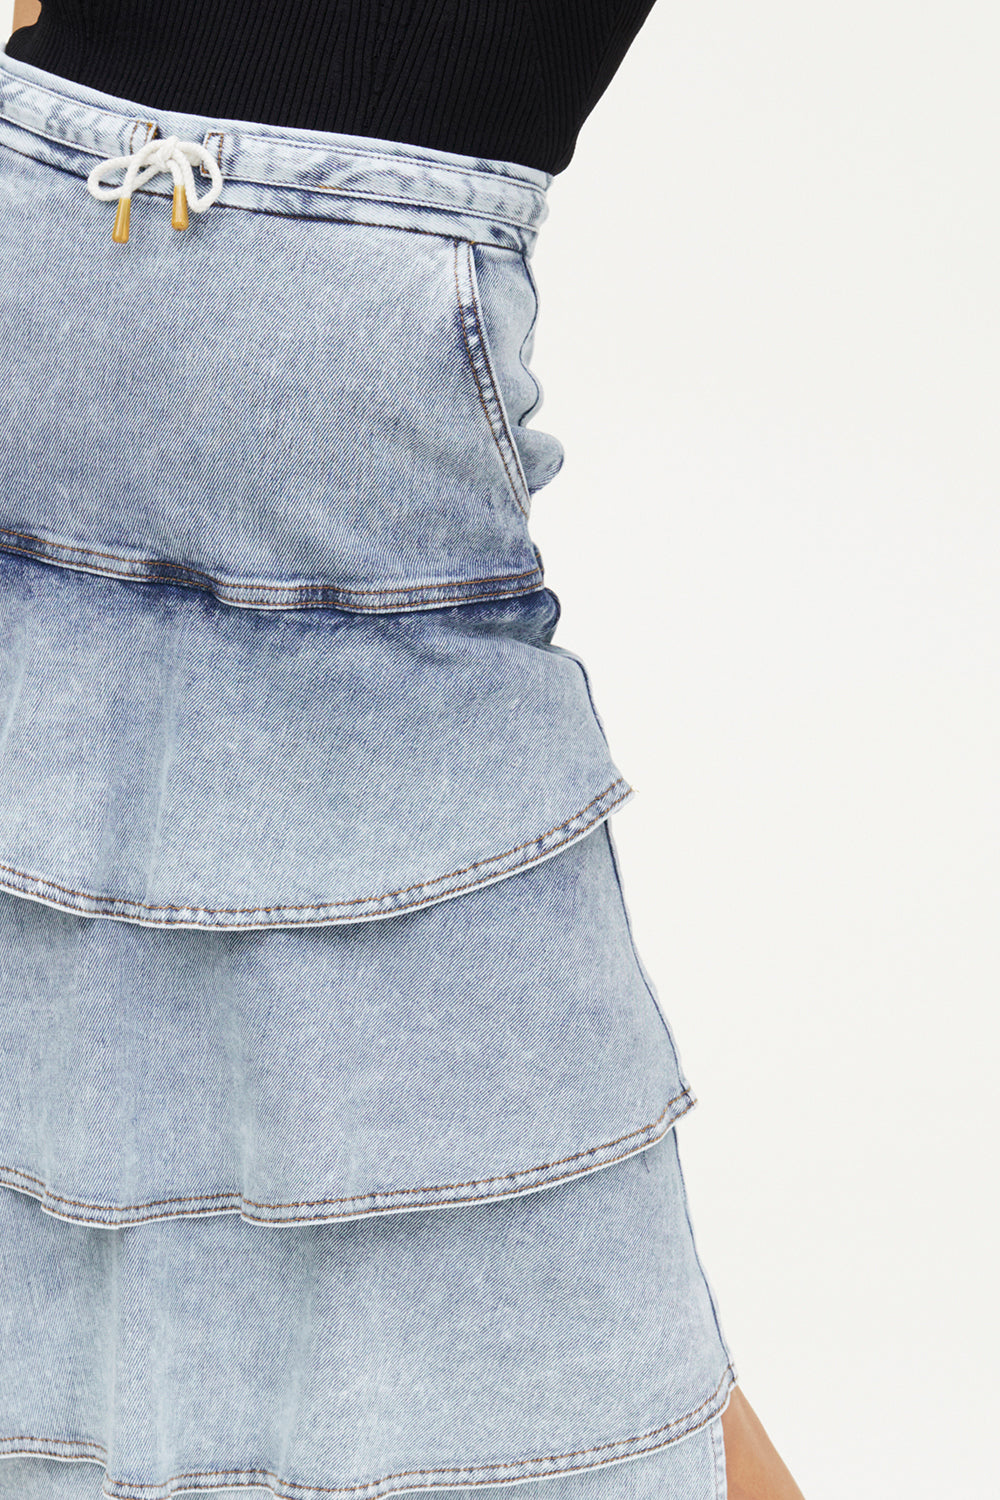 BLEACH TREATMENT DENIM SKIRT